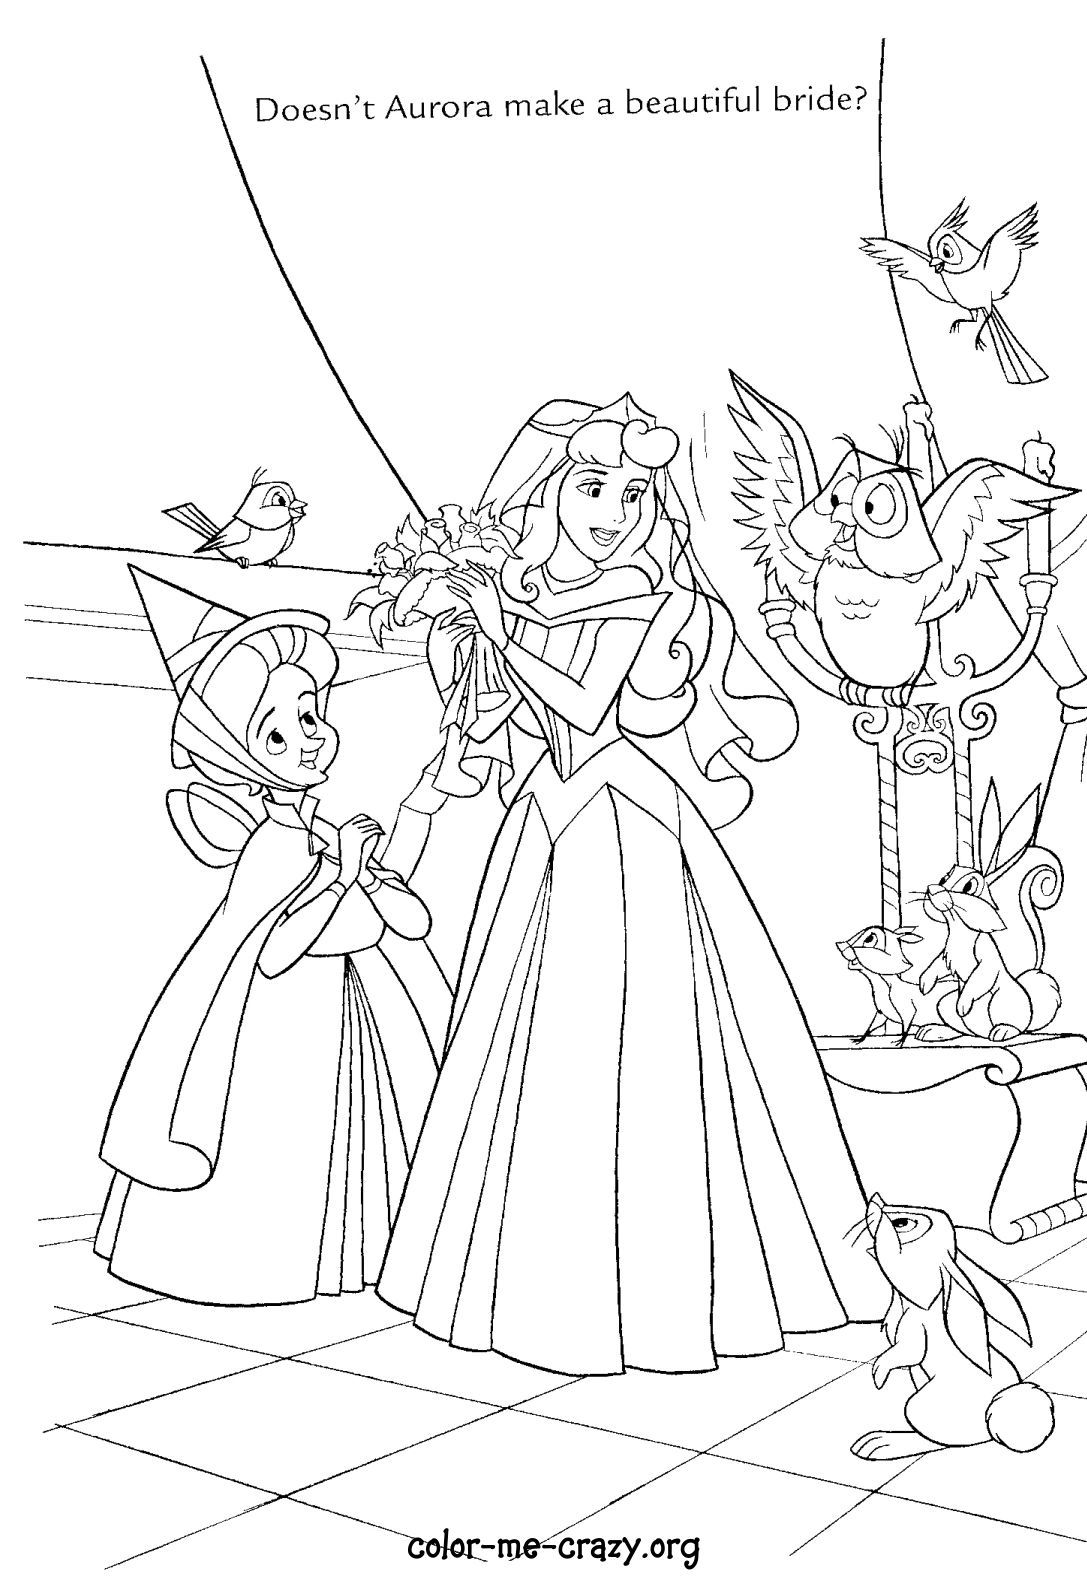 A Whole Bunch Of Disney Princess Wedding Themed Colouring Pages To Keep The Little Wedding Coloring Pages Disney Coloring Pages Sleeping Beauty Coloring Pages